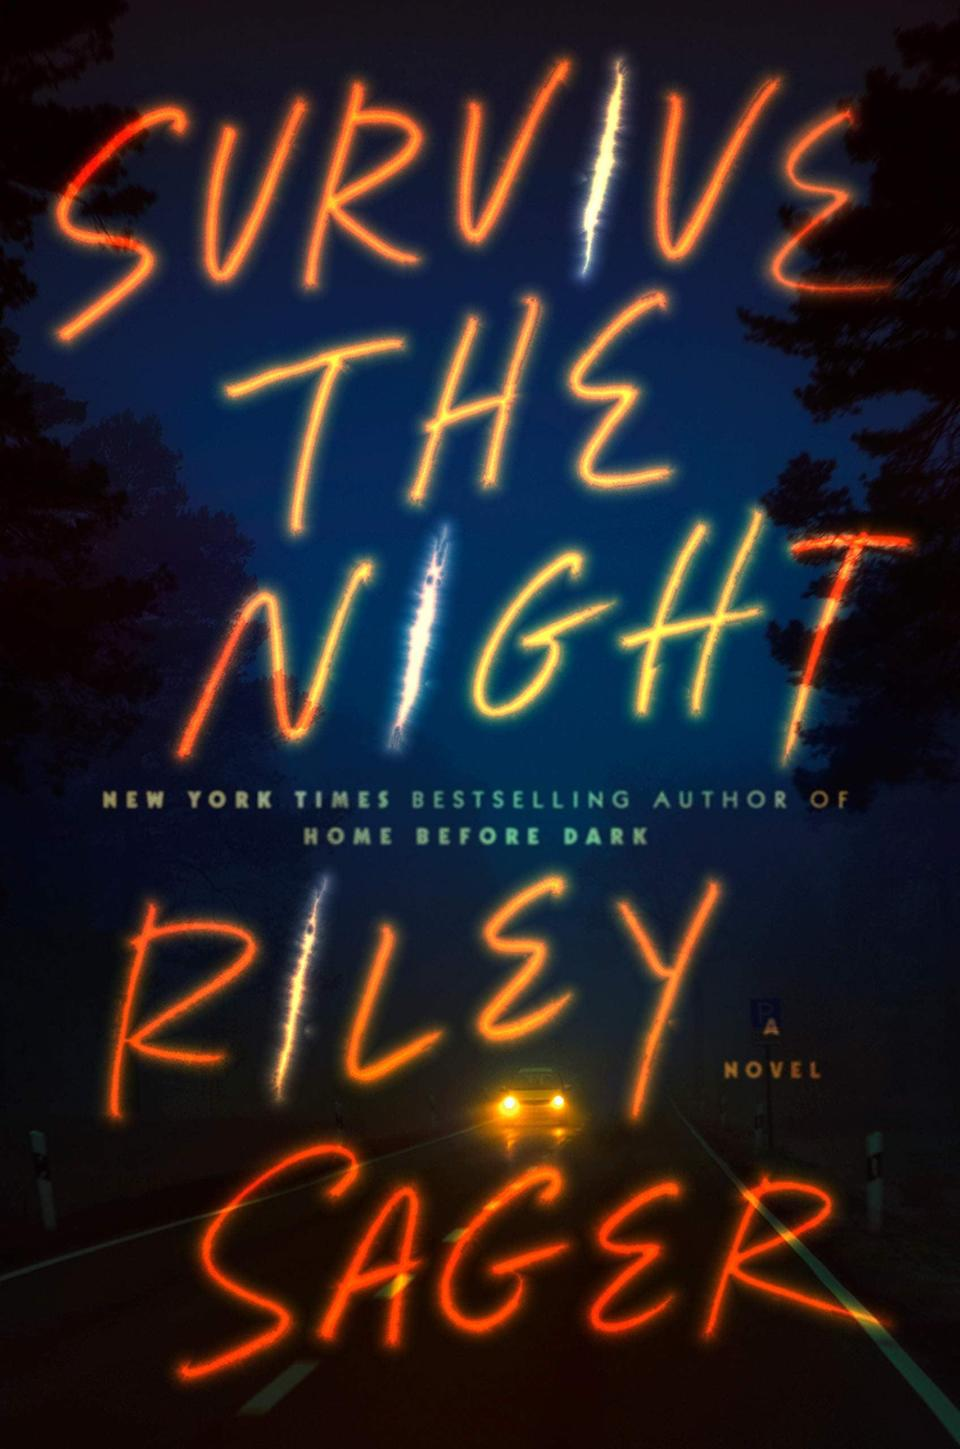 <p>Riley Sager is serving up a brand-new thriller this summer, and it sounds like his most intense story yet. <span><strong>Survive the Night</strong></span> is the story of a '90s road trip from Hell. Charlie met Josh on a ride board at their college, but she doesn't really know anything about the man she's sharing a car with, least of all whether he's the notorious Campus Killer who claimed the life of her friend. </p> <p><em>Out July 6</em></p>